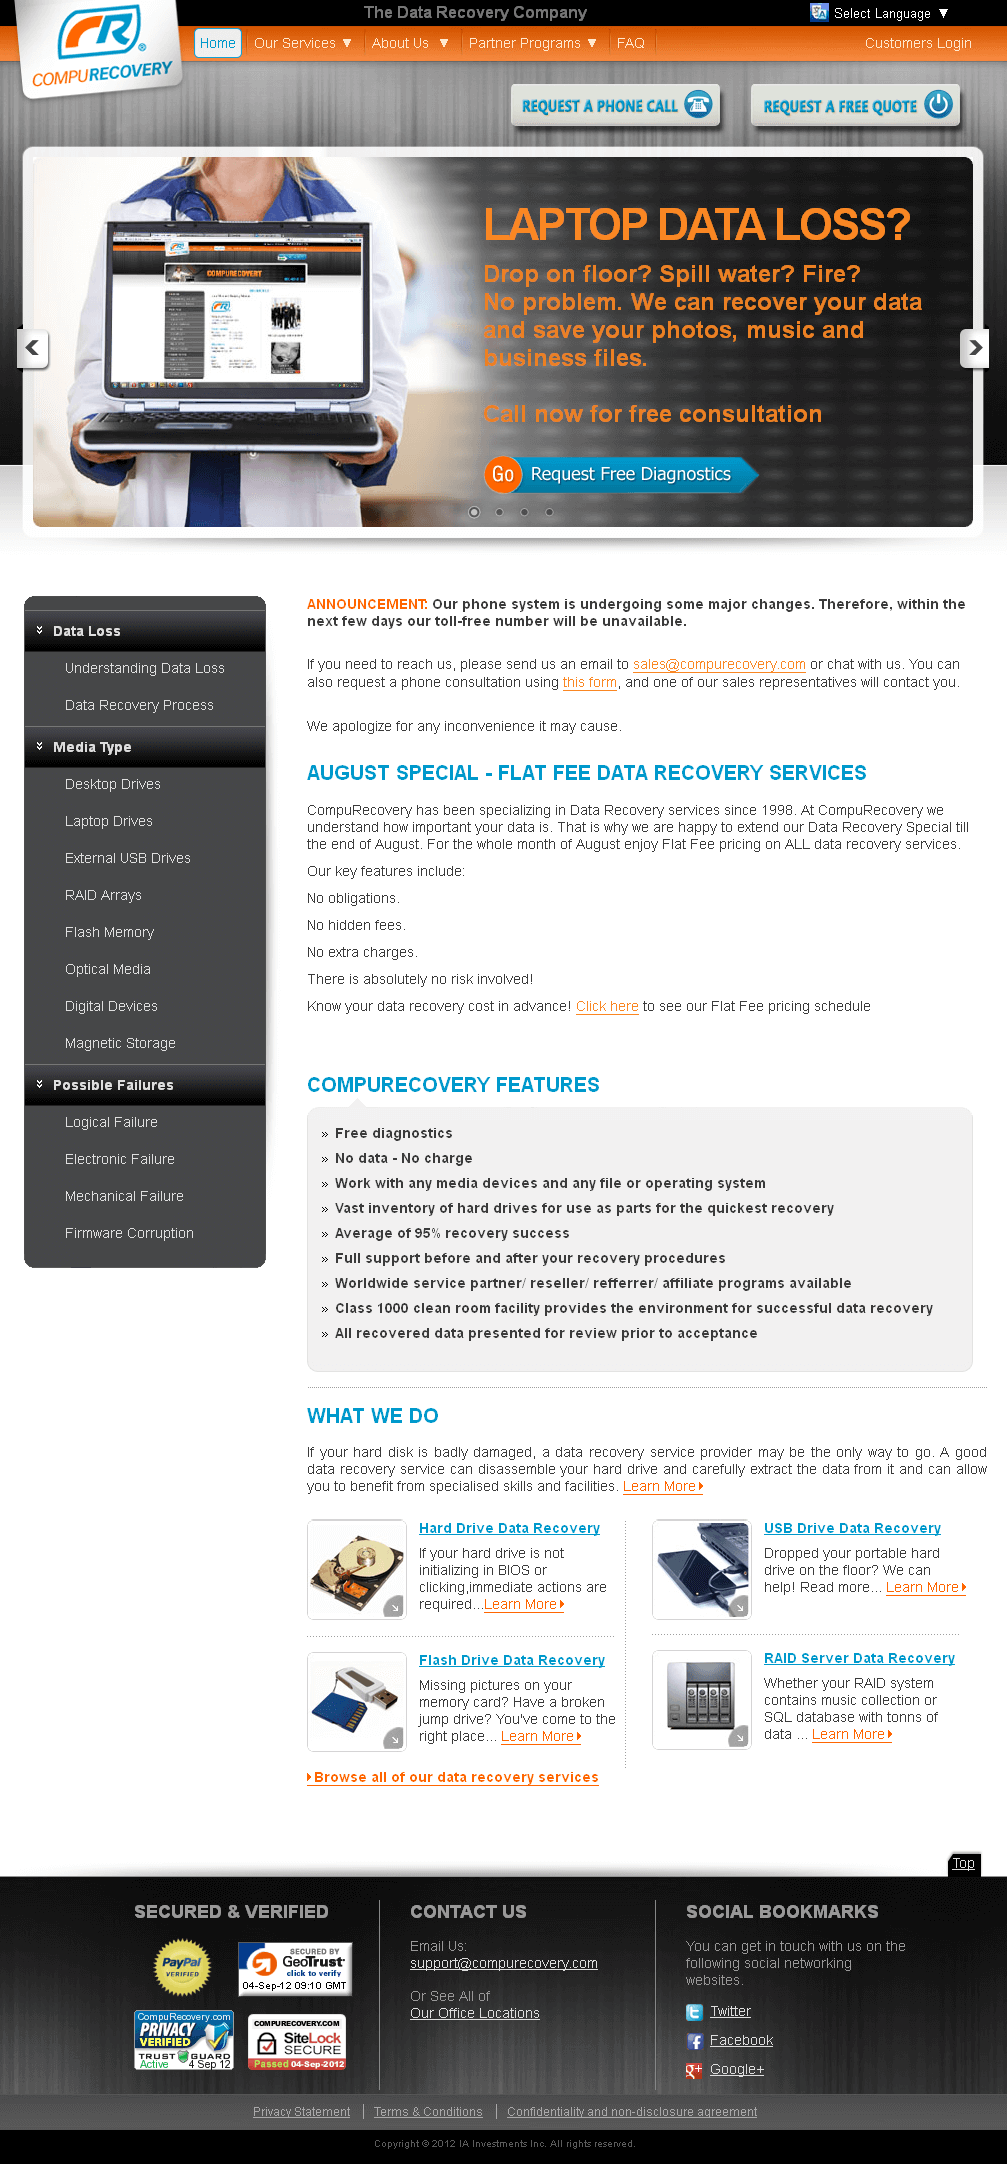 Website for Data Recovery Service Provider 'CompuRecovery' Using PHP